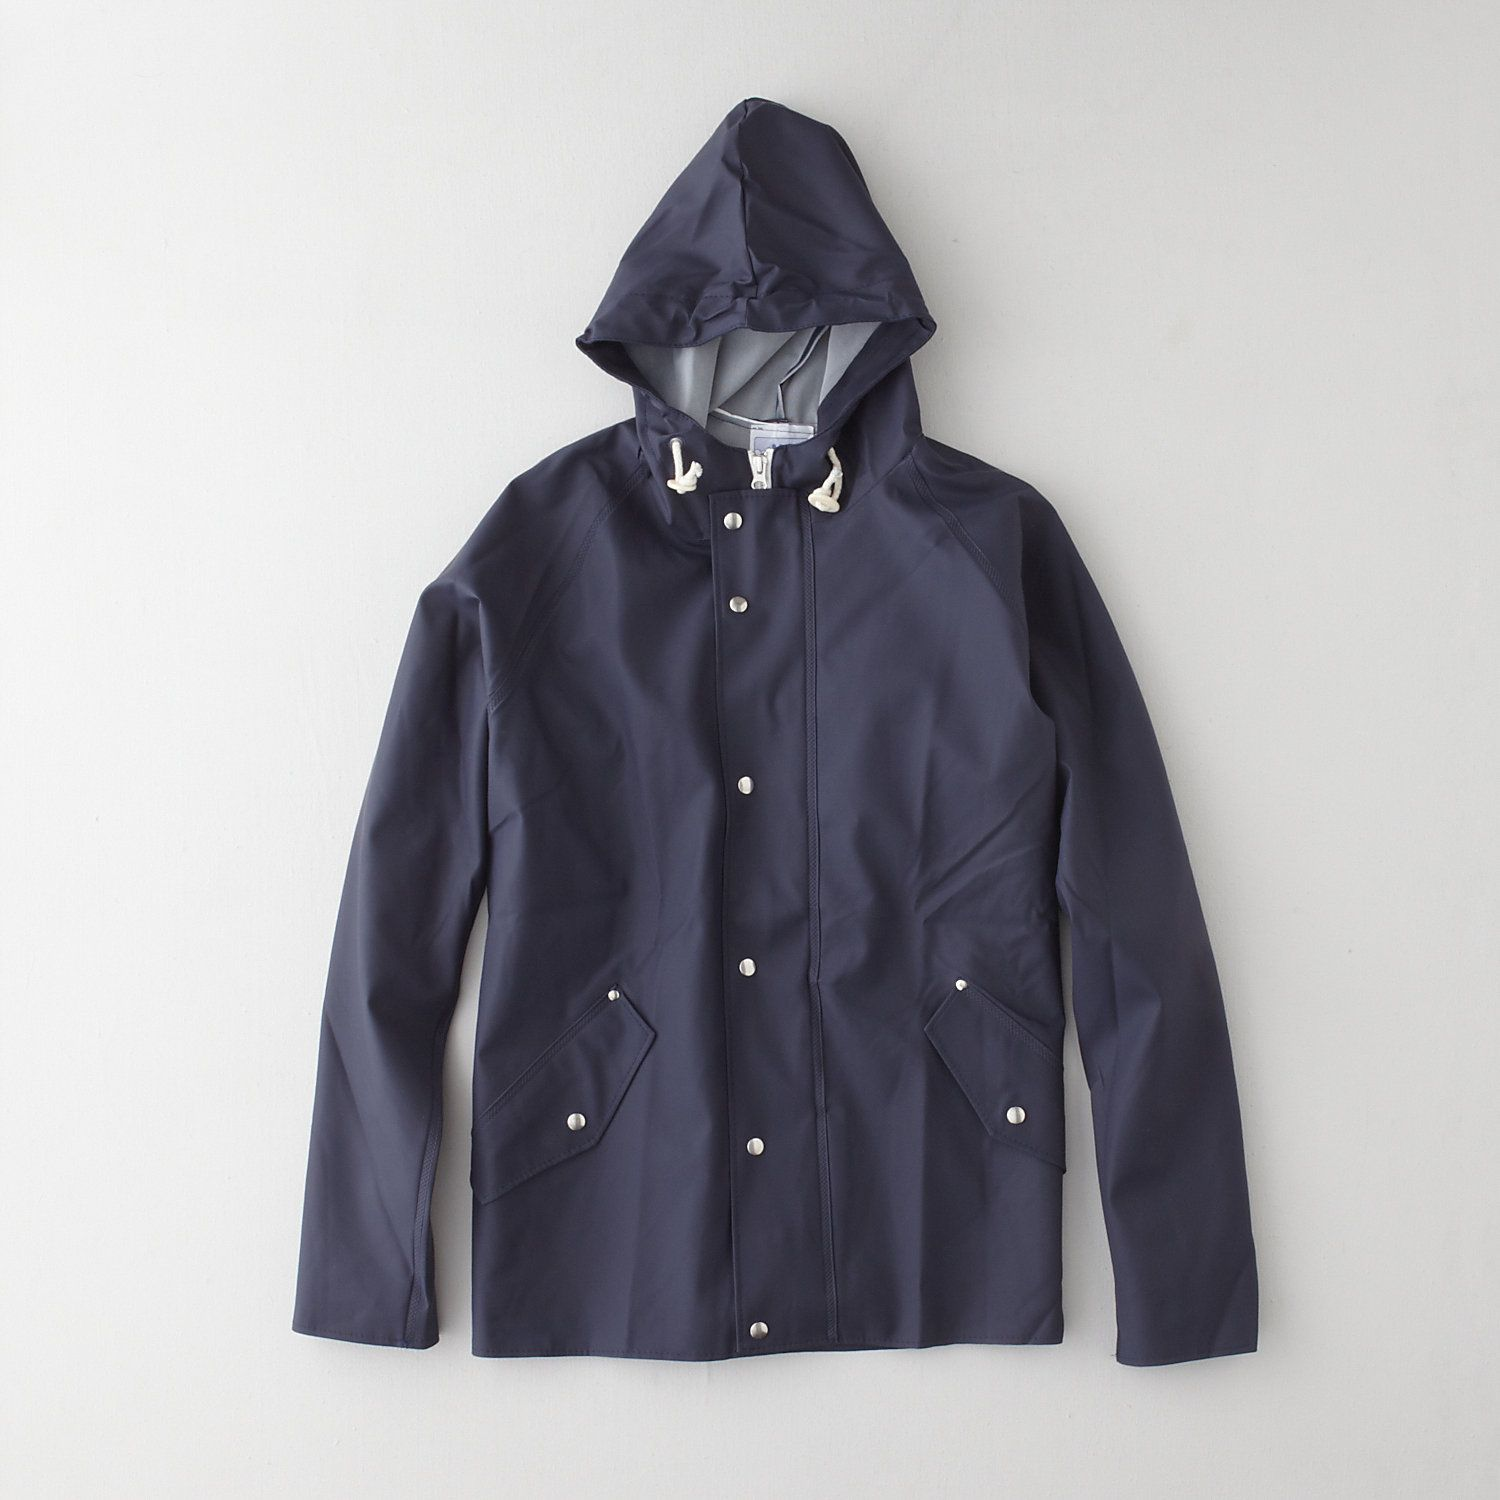 Norse Projects Classic Elka Rain Jacke | LifeStyle | Pinterest ...